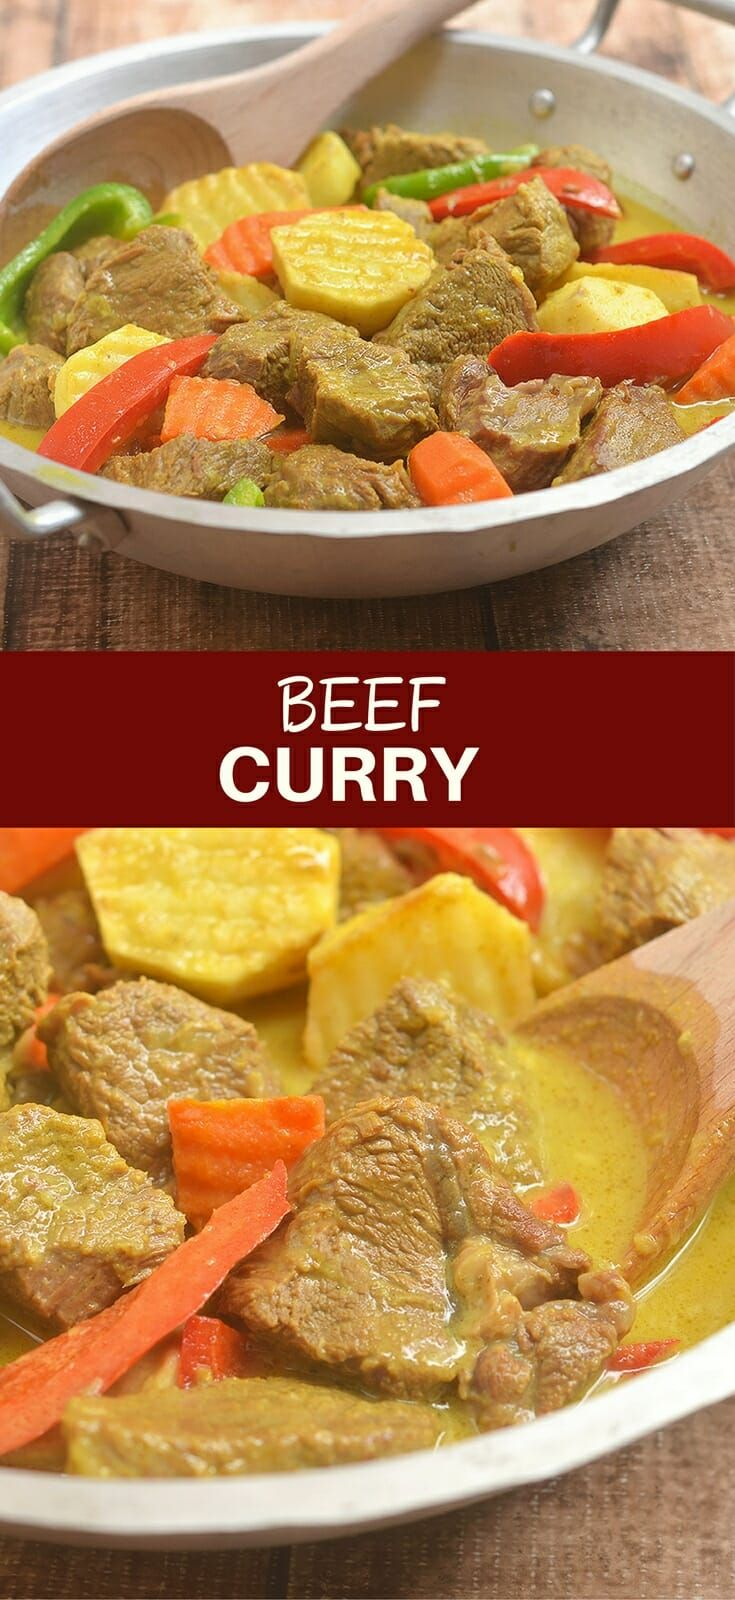 Beef Curry with tender beef, potatoes, carrots, and bell peppers braised in coconut milk and curry spices makes an amazing meal the whole family will love. Rich, hearty and flavorful, it's perfect with steamed rice!